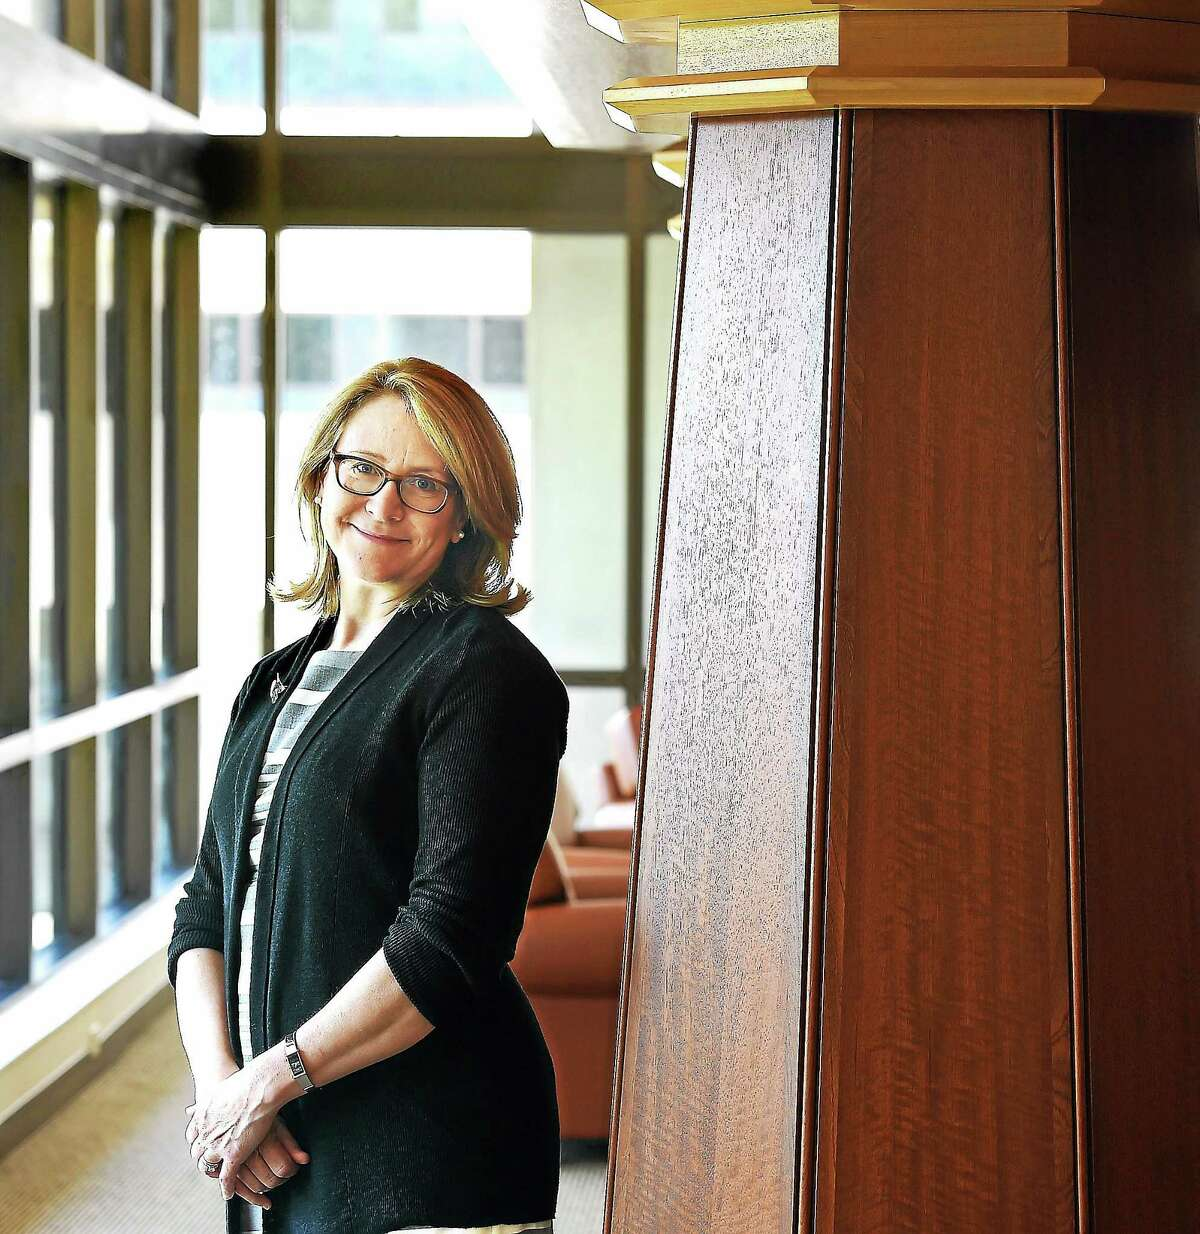 Quinnipiac University will be opening its new law school building on its North Haven campus. Law school Dean Jennifer Brown, pictured, gave the Register a sneak peak.